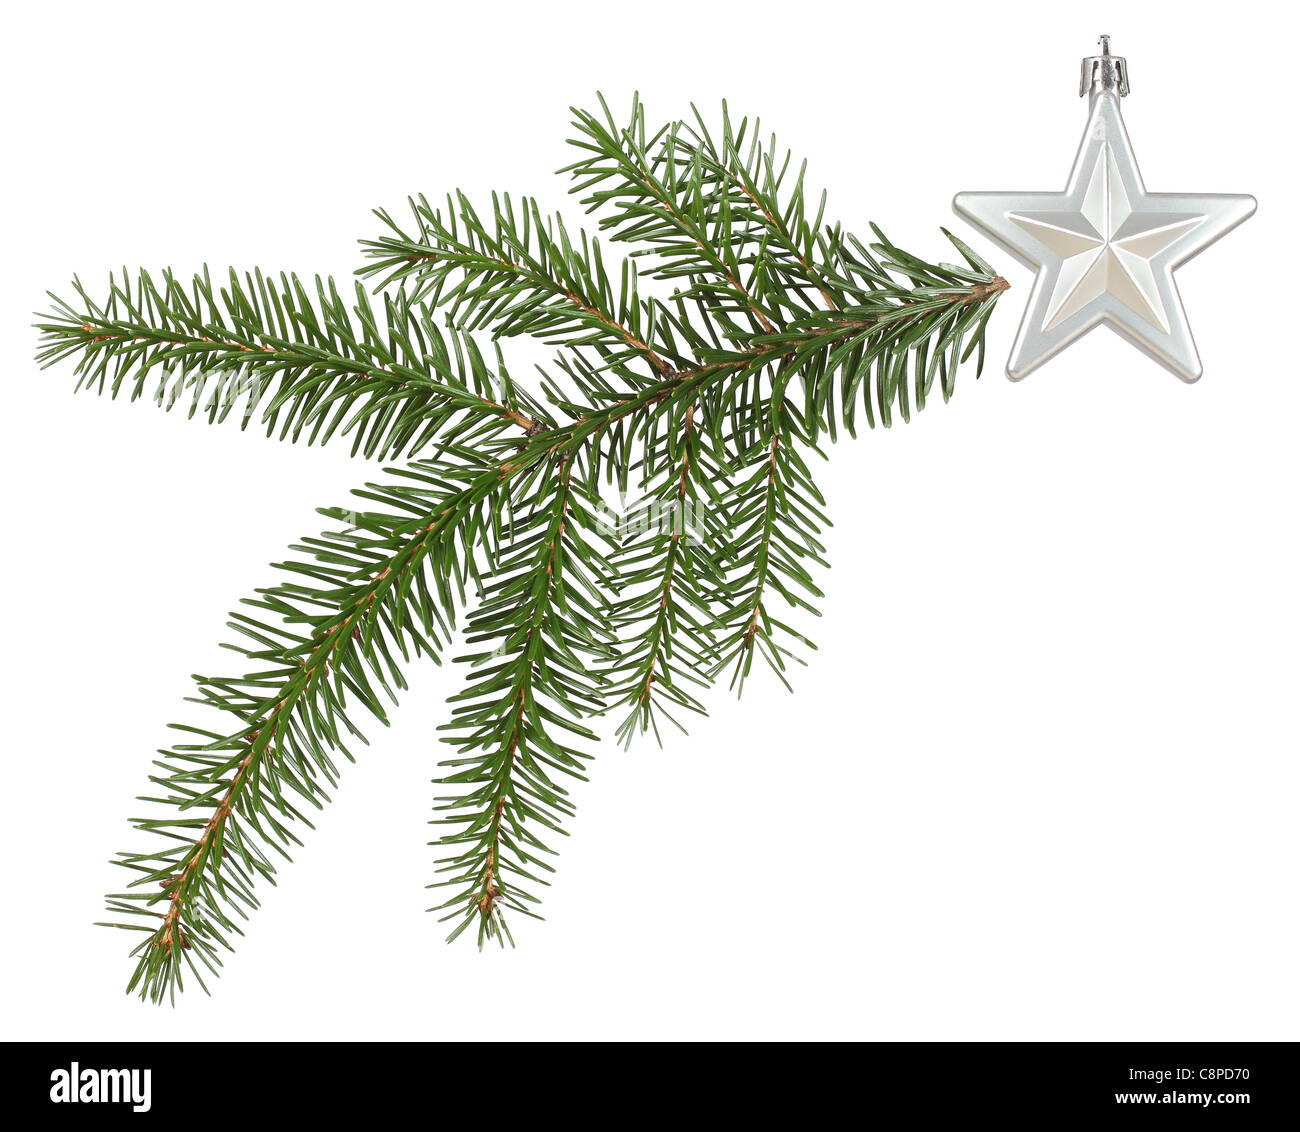 green twig and a silver star arrange as a Christmas comet - Stock Image